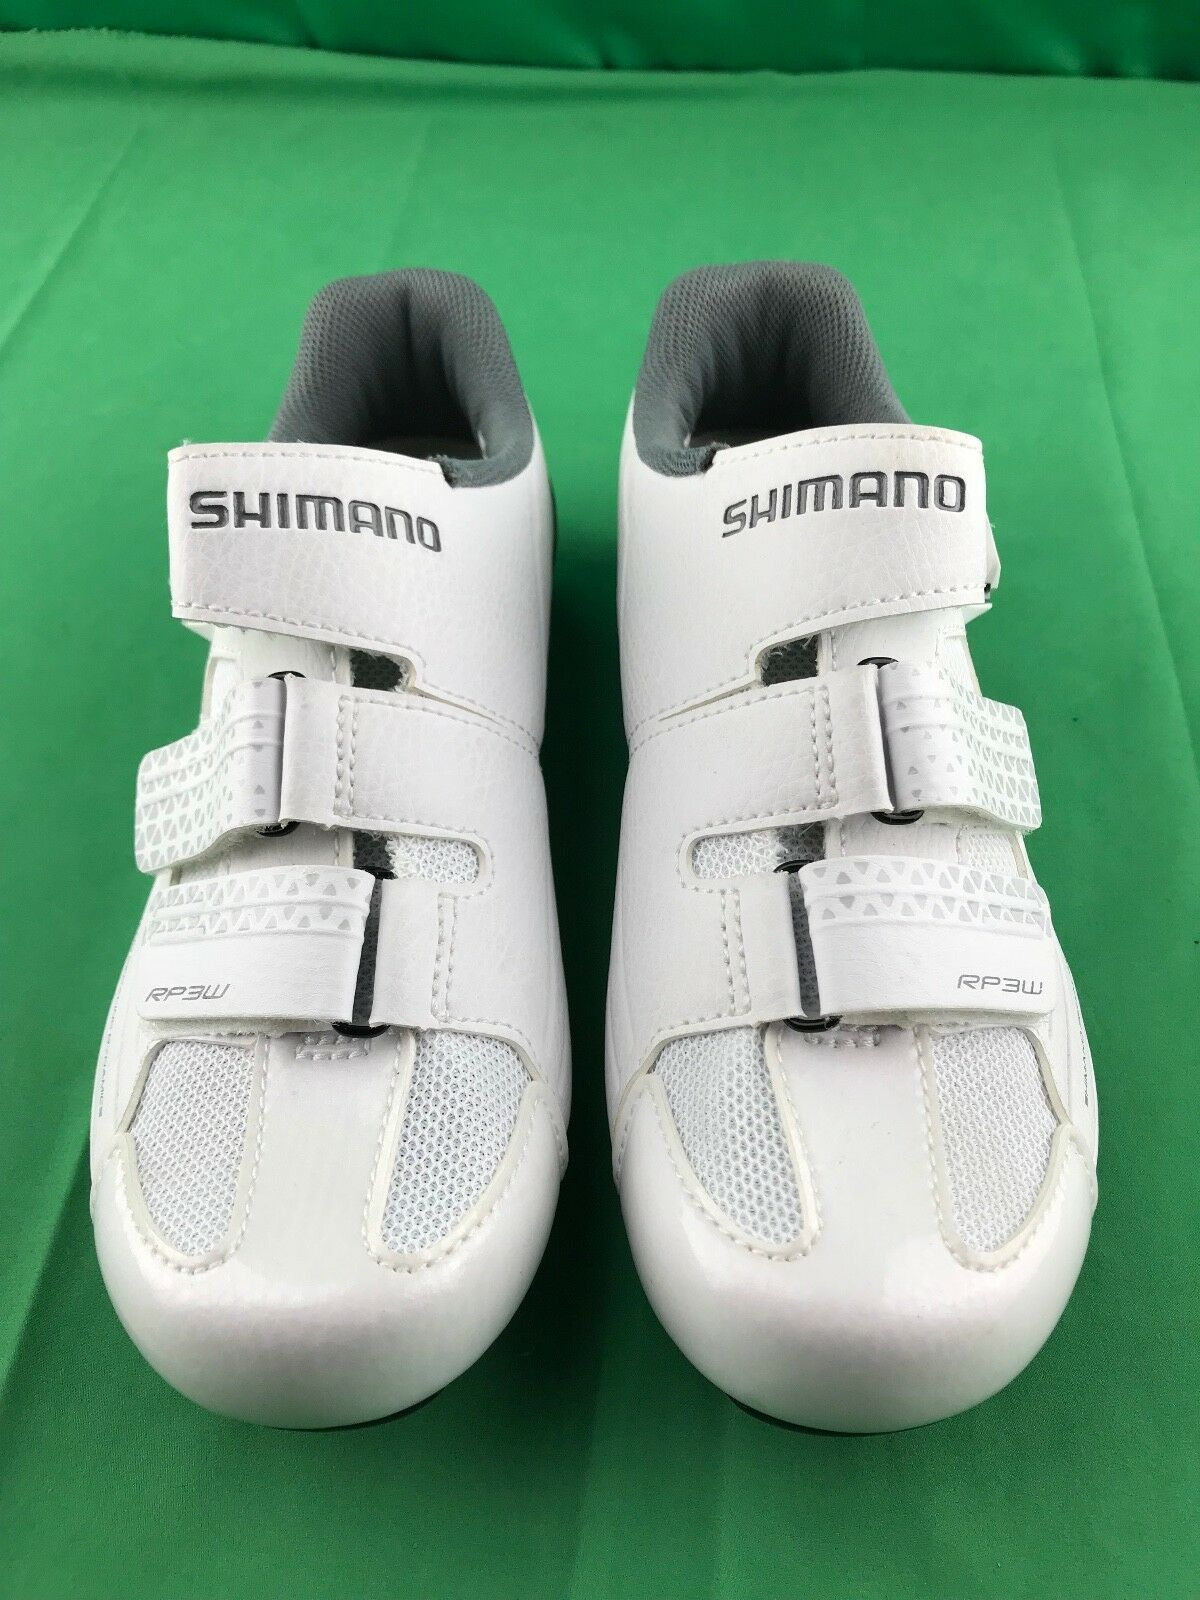 Shimano RP3 Women's Road Performance Cycling shoes White -  Size 6.5 US  fair prices